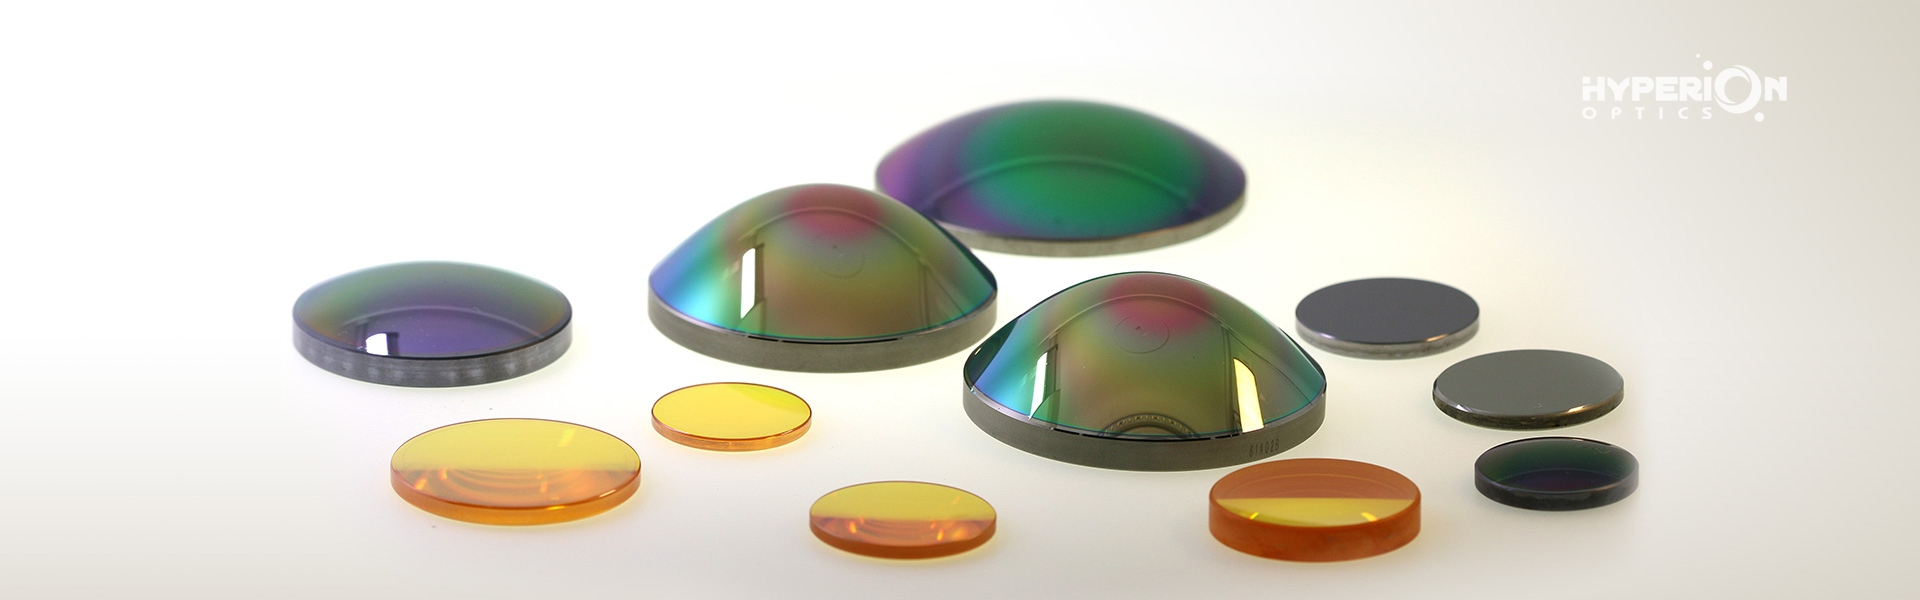 Hyperion infrared lenses manufacturer